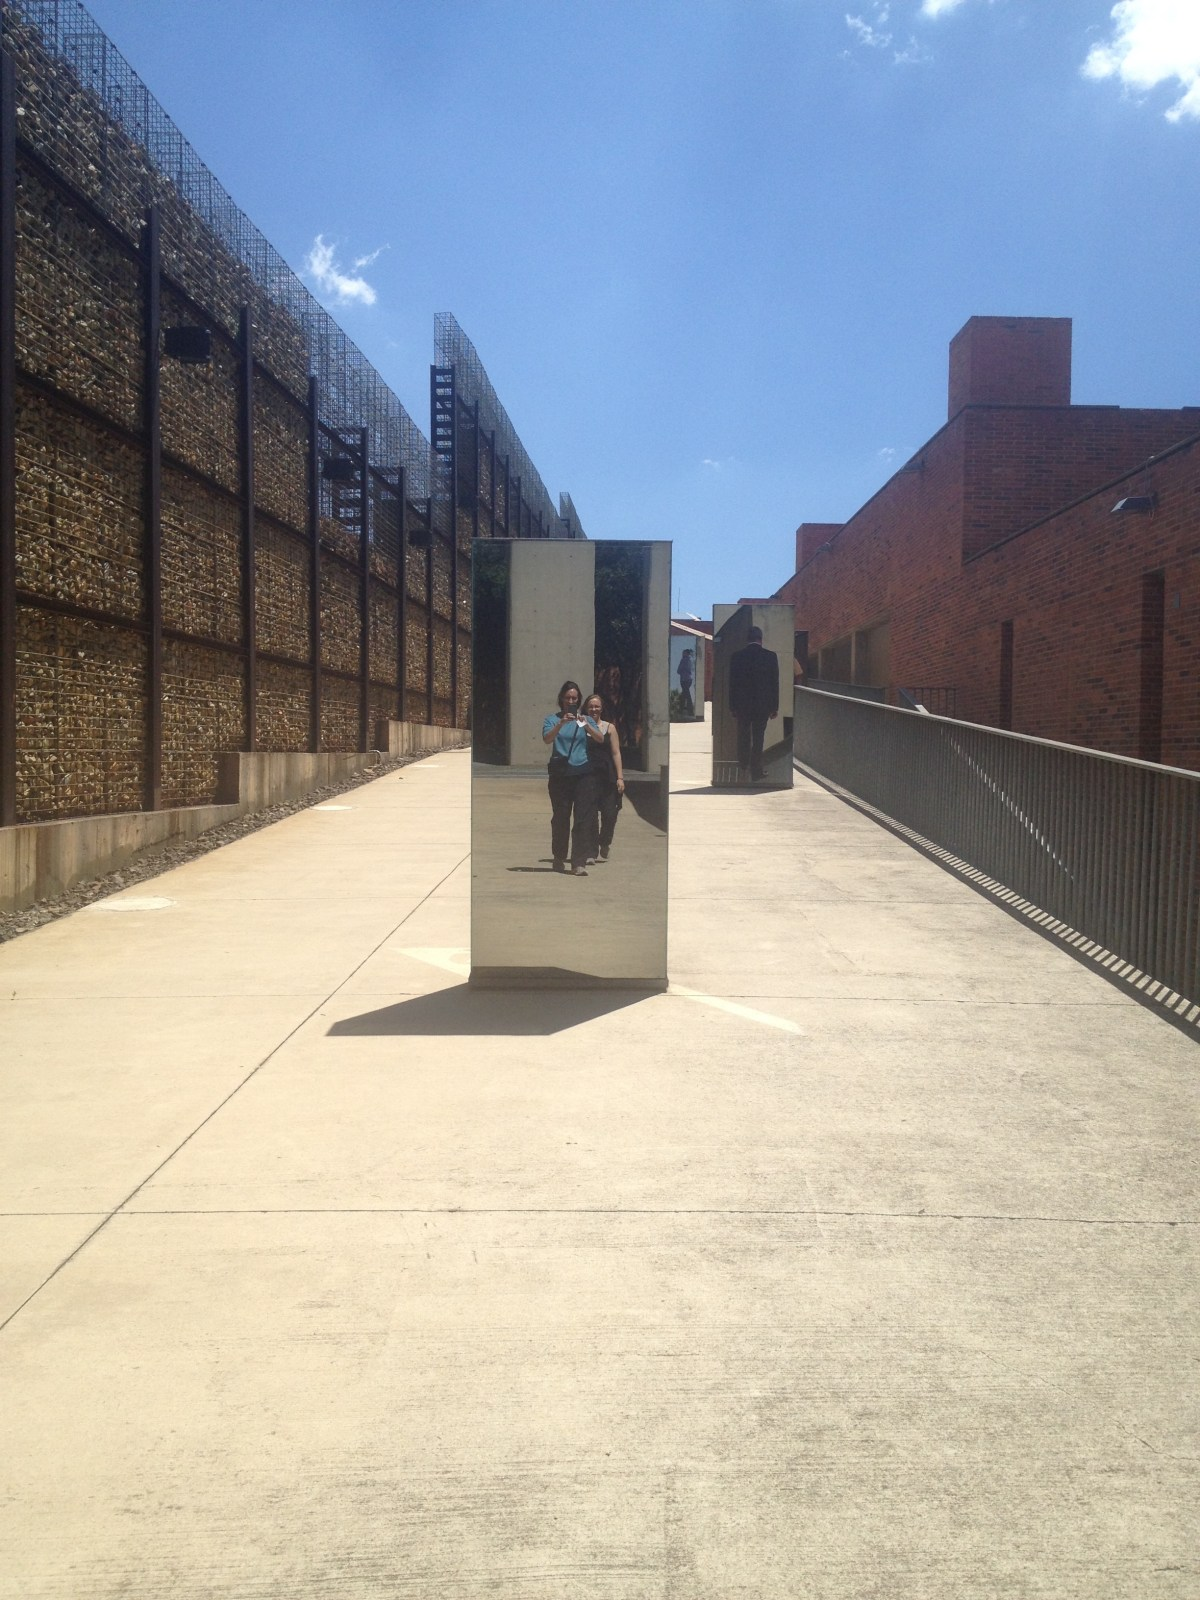 The Apartheid Museum in Johannesburg, South Africa: Photo Gallery